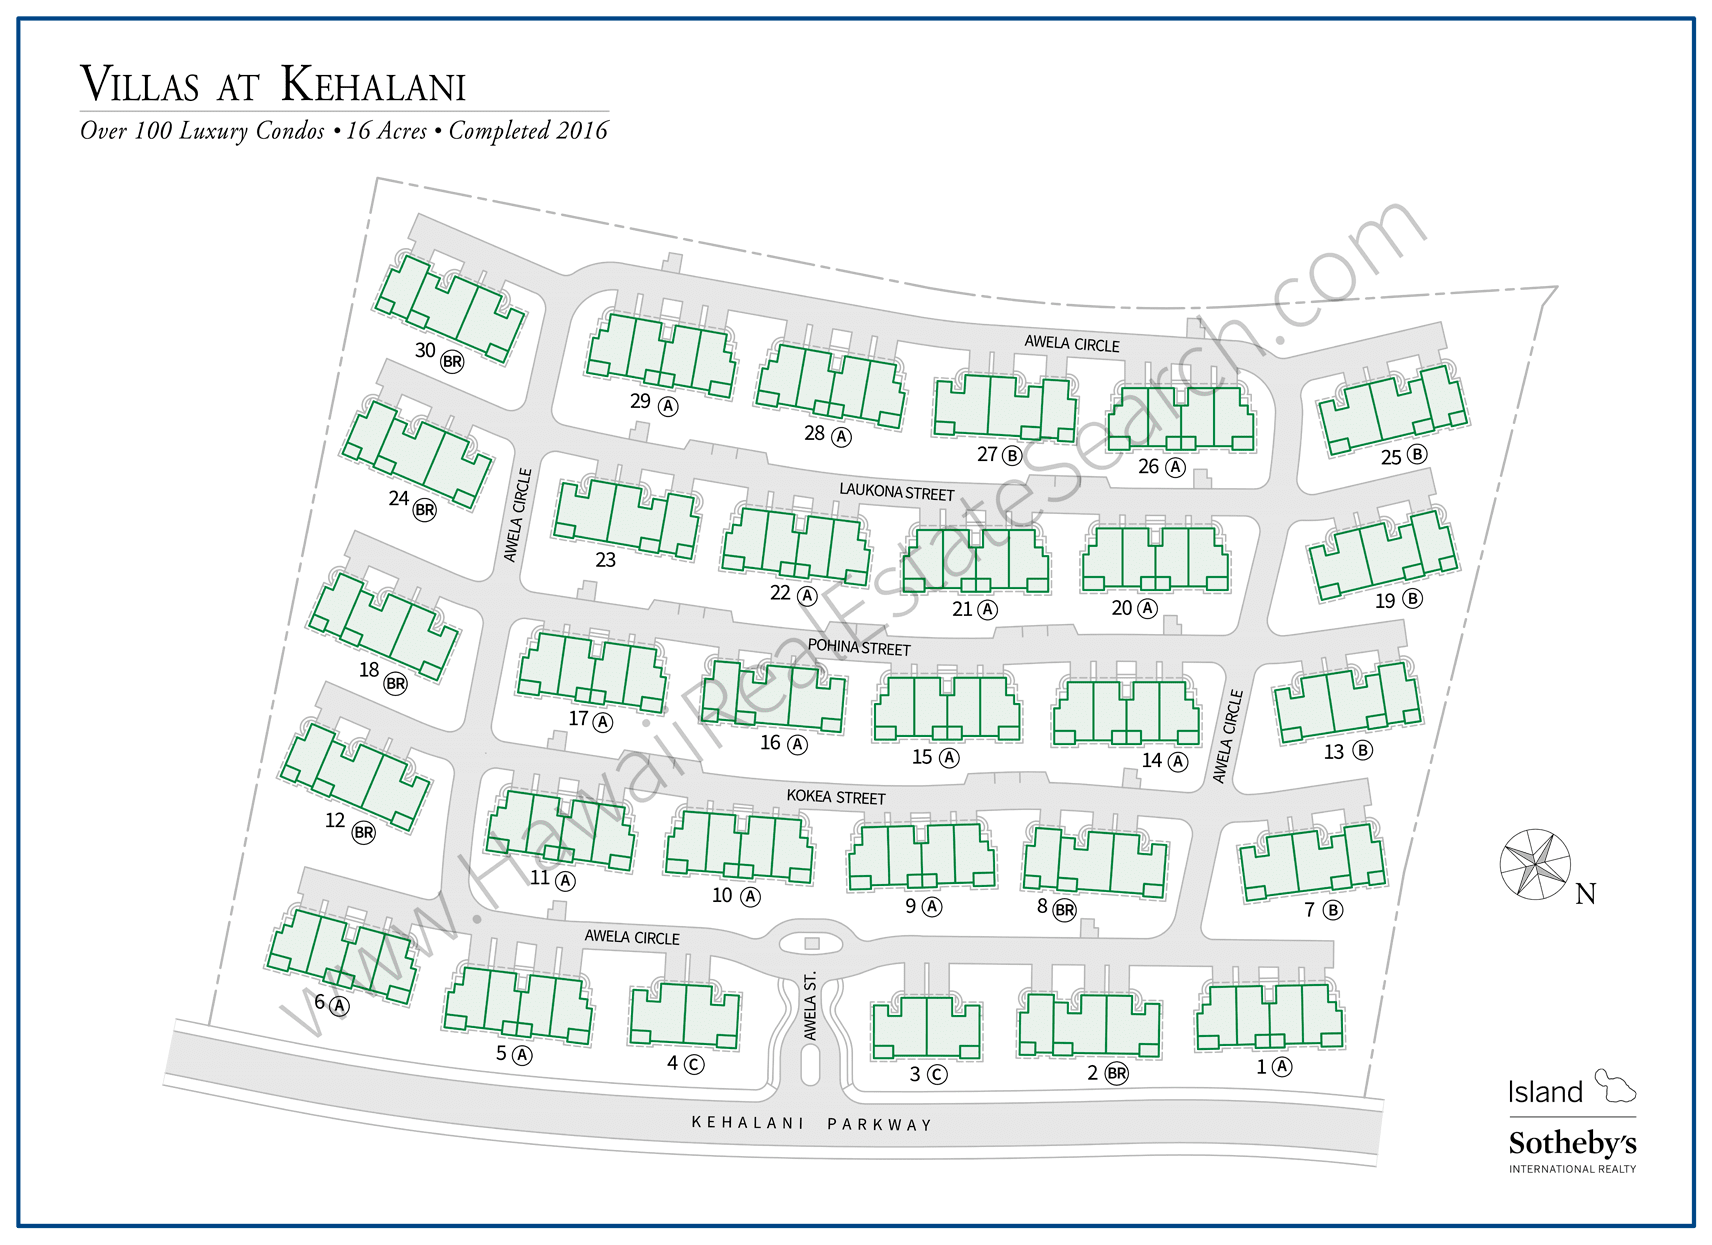 Villas at Kehalani Map 2019